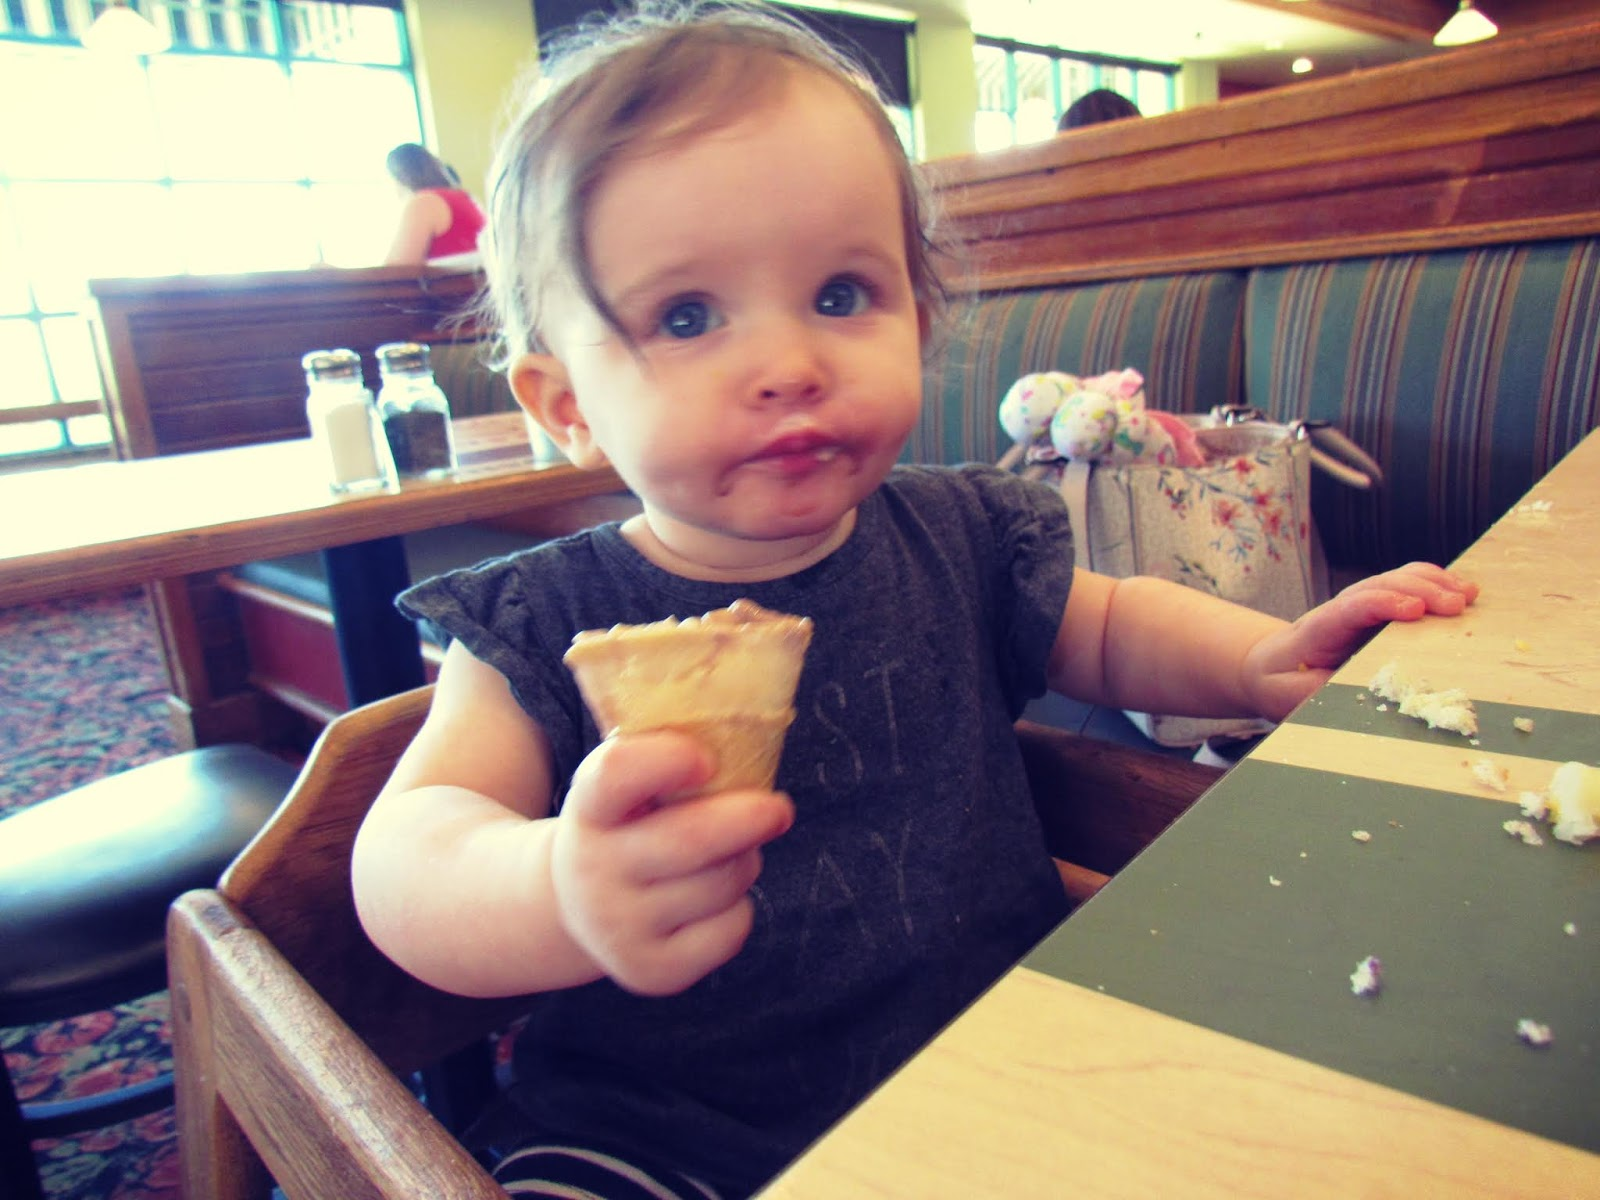 a baby girl eating a mini ice cream cone at a restaurant in Florida